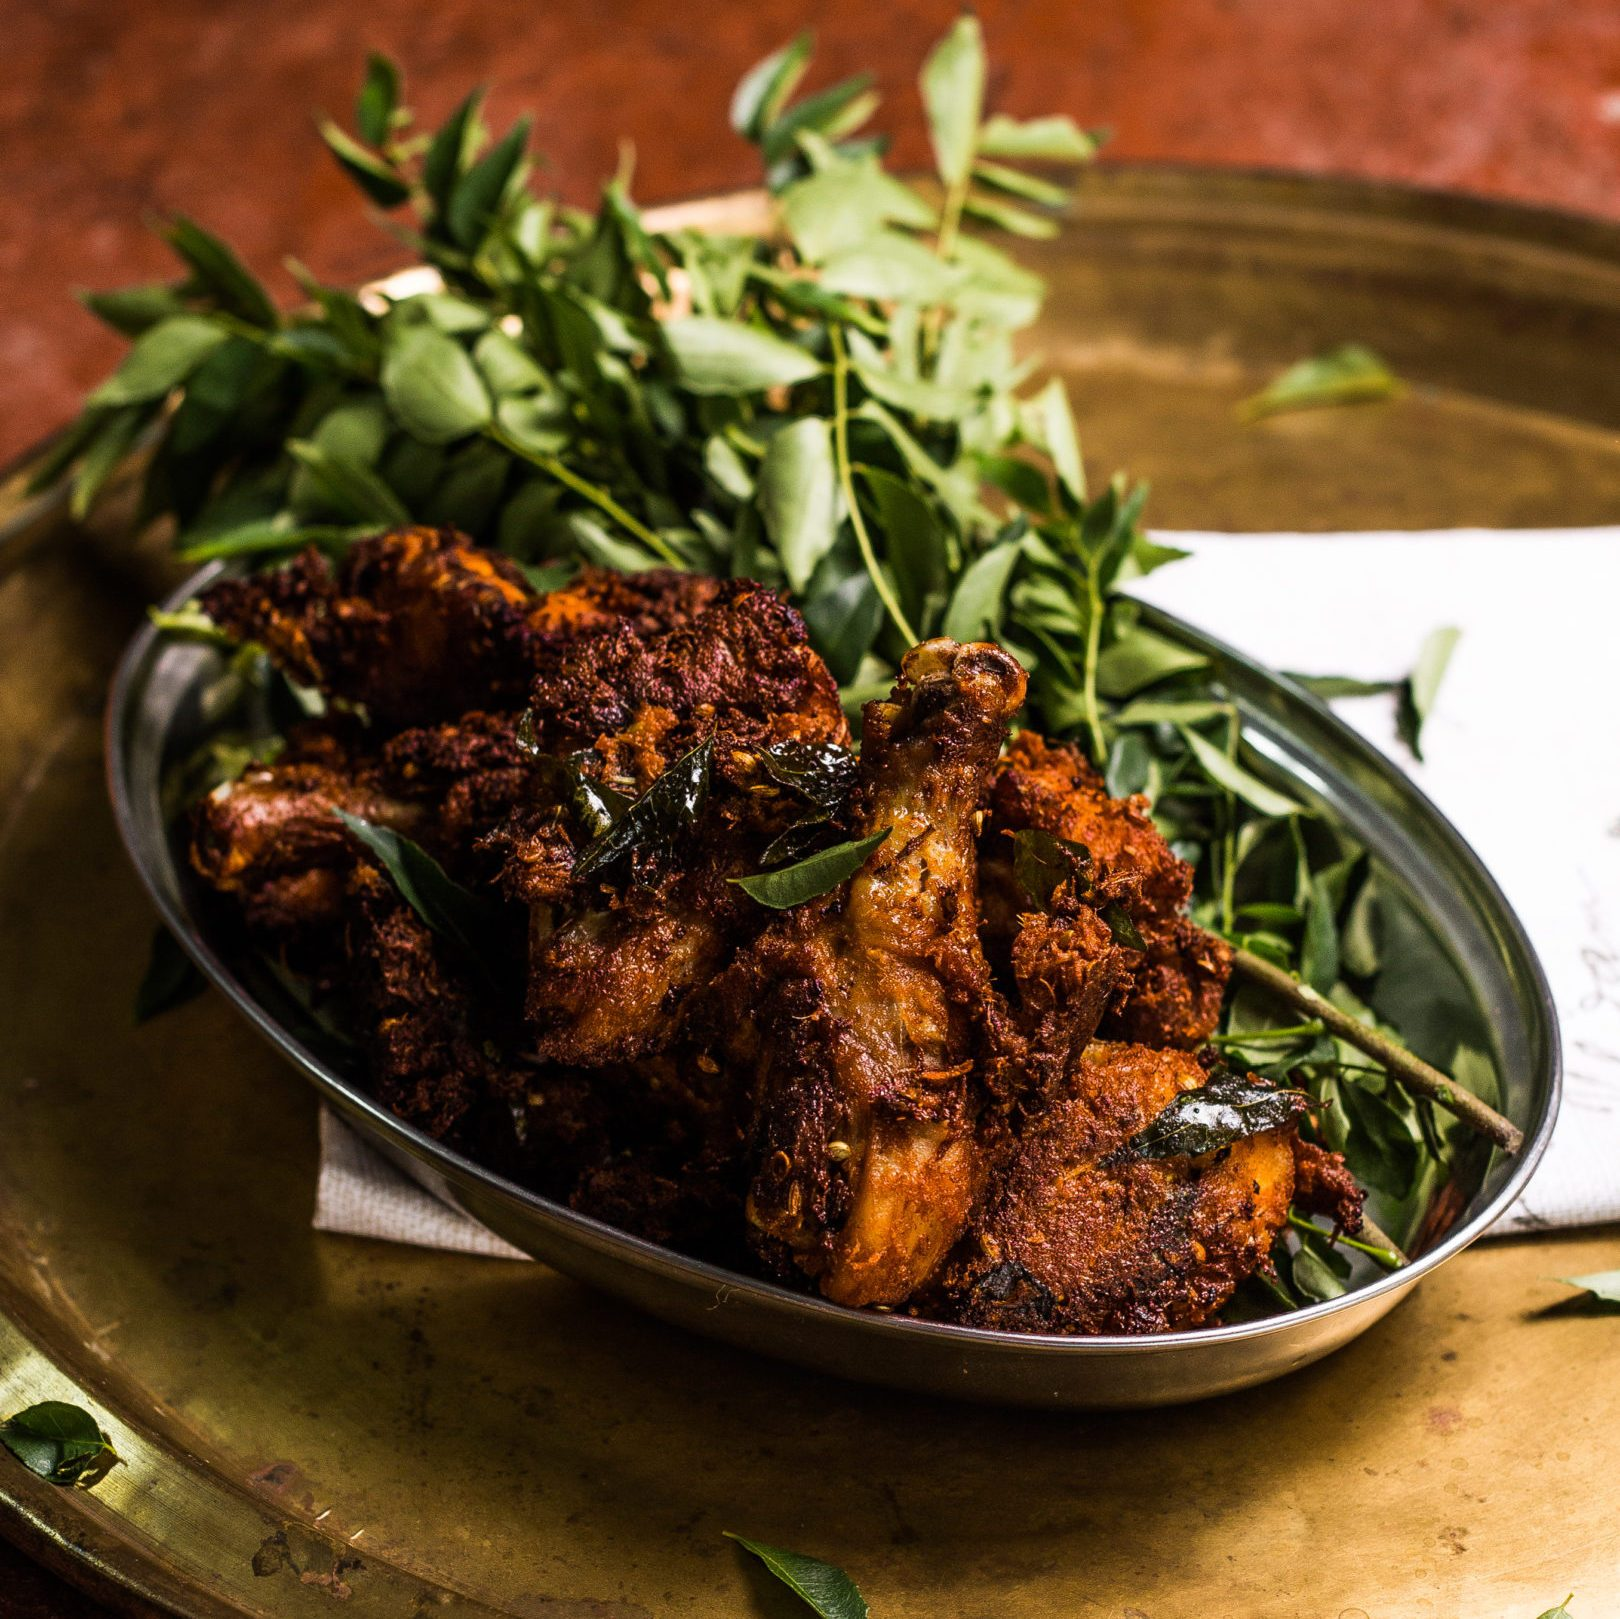 Ayam Goreng Rempah (Malaysian Spice Fried Chicken)